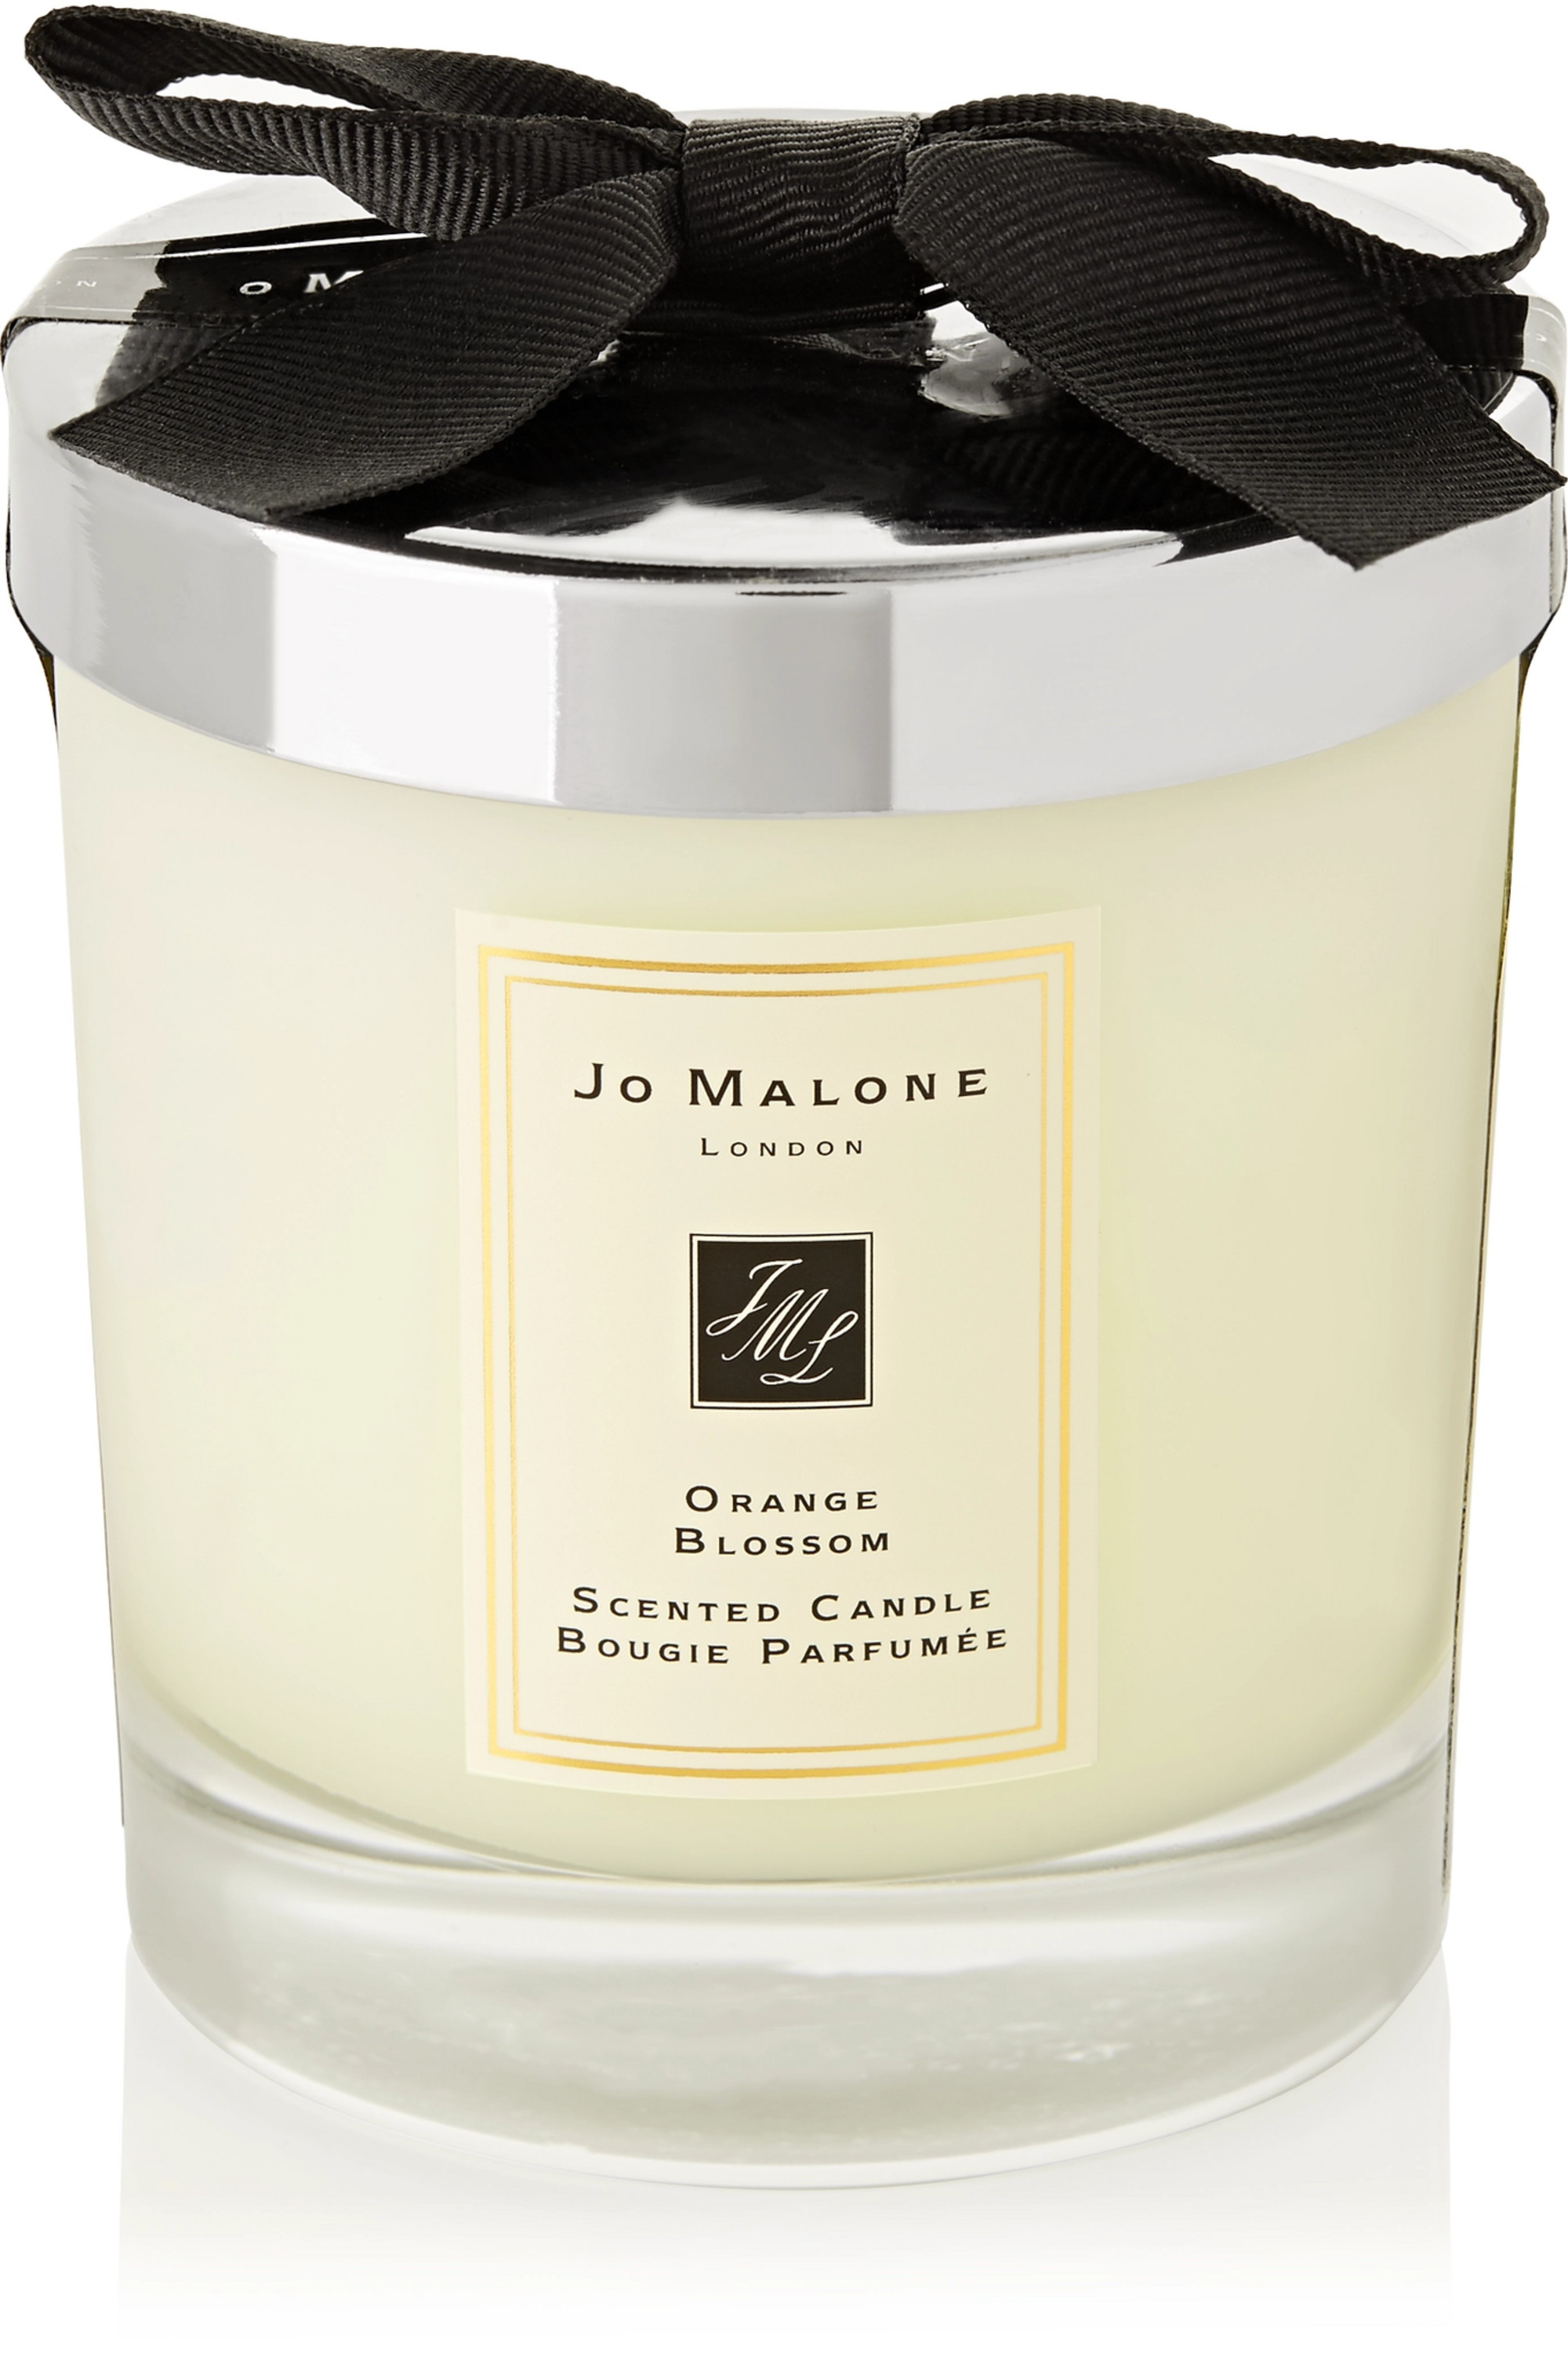 Jo Malone London Orange Blossom Scented Home Candle, 200g